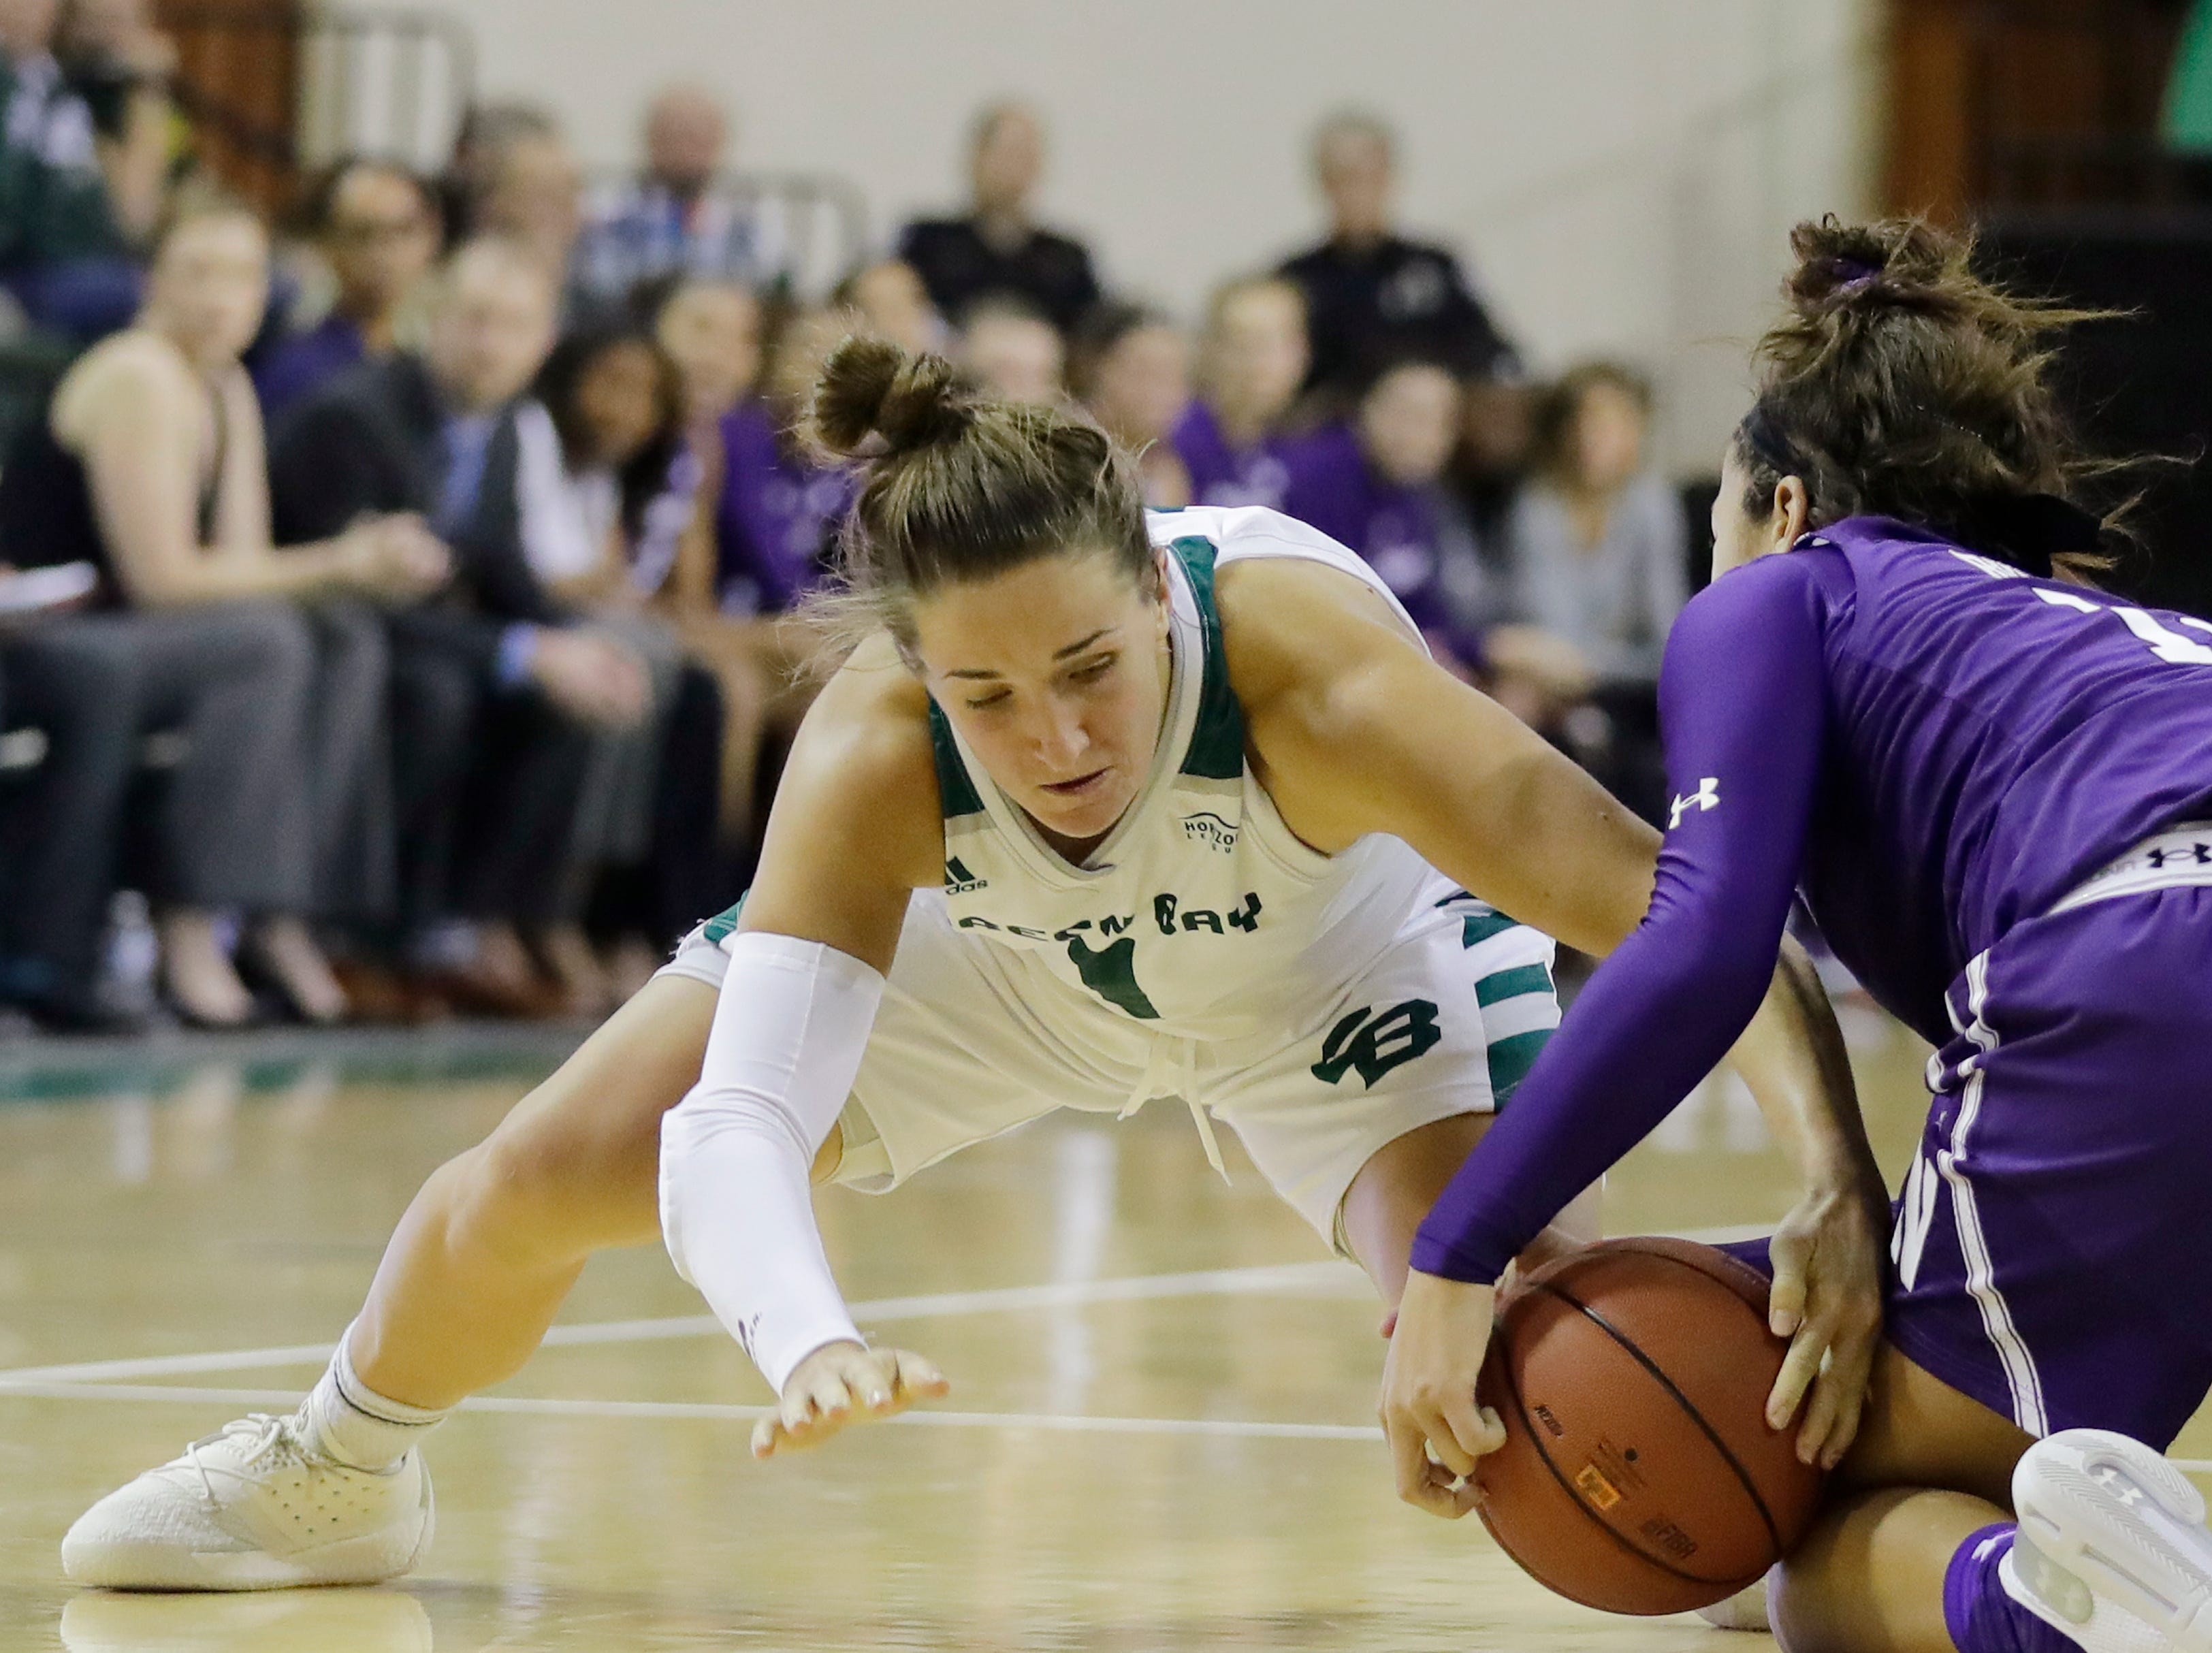 Green Bay Phoenix guard Jen Wellnitz (1) fights for a loose ball against Northwestern Wildcats guard Veronica Burton (12) in a women's NCAA basketball game at the Kress Center on Tuesday, November 6, 2018 in Green Bay, Wis.